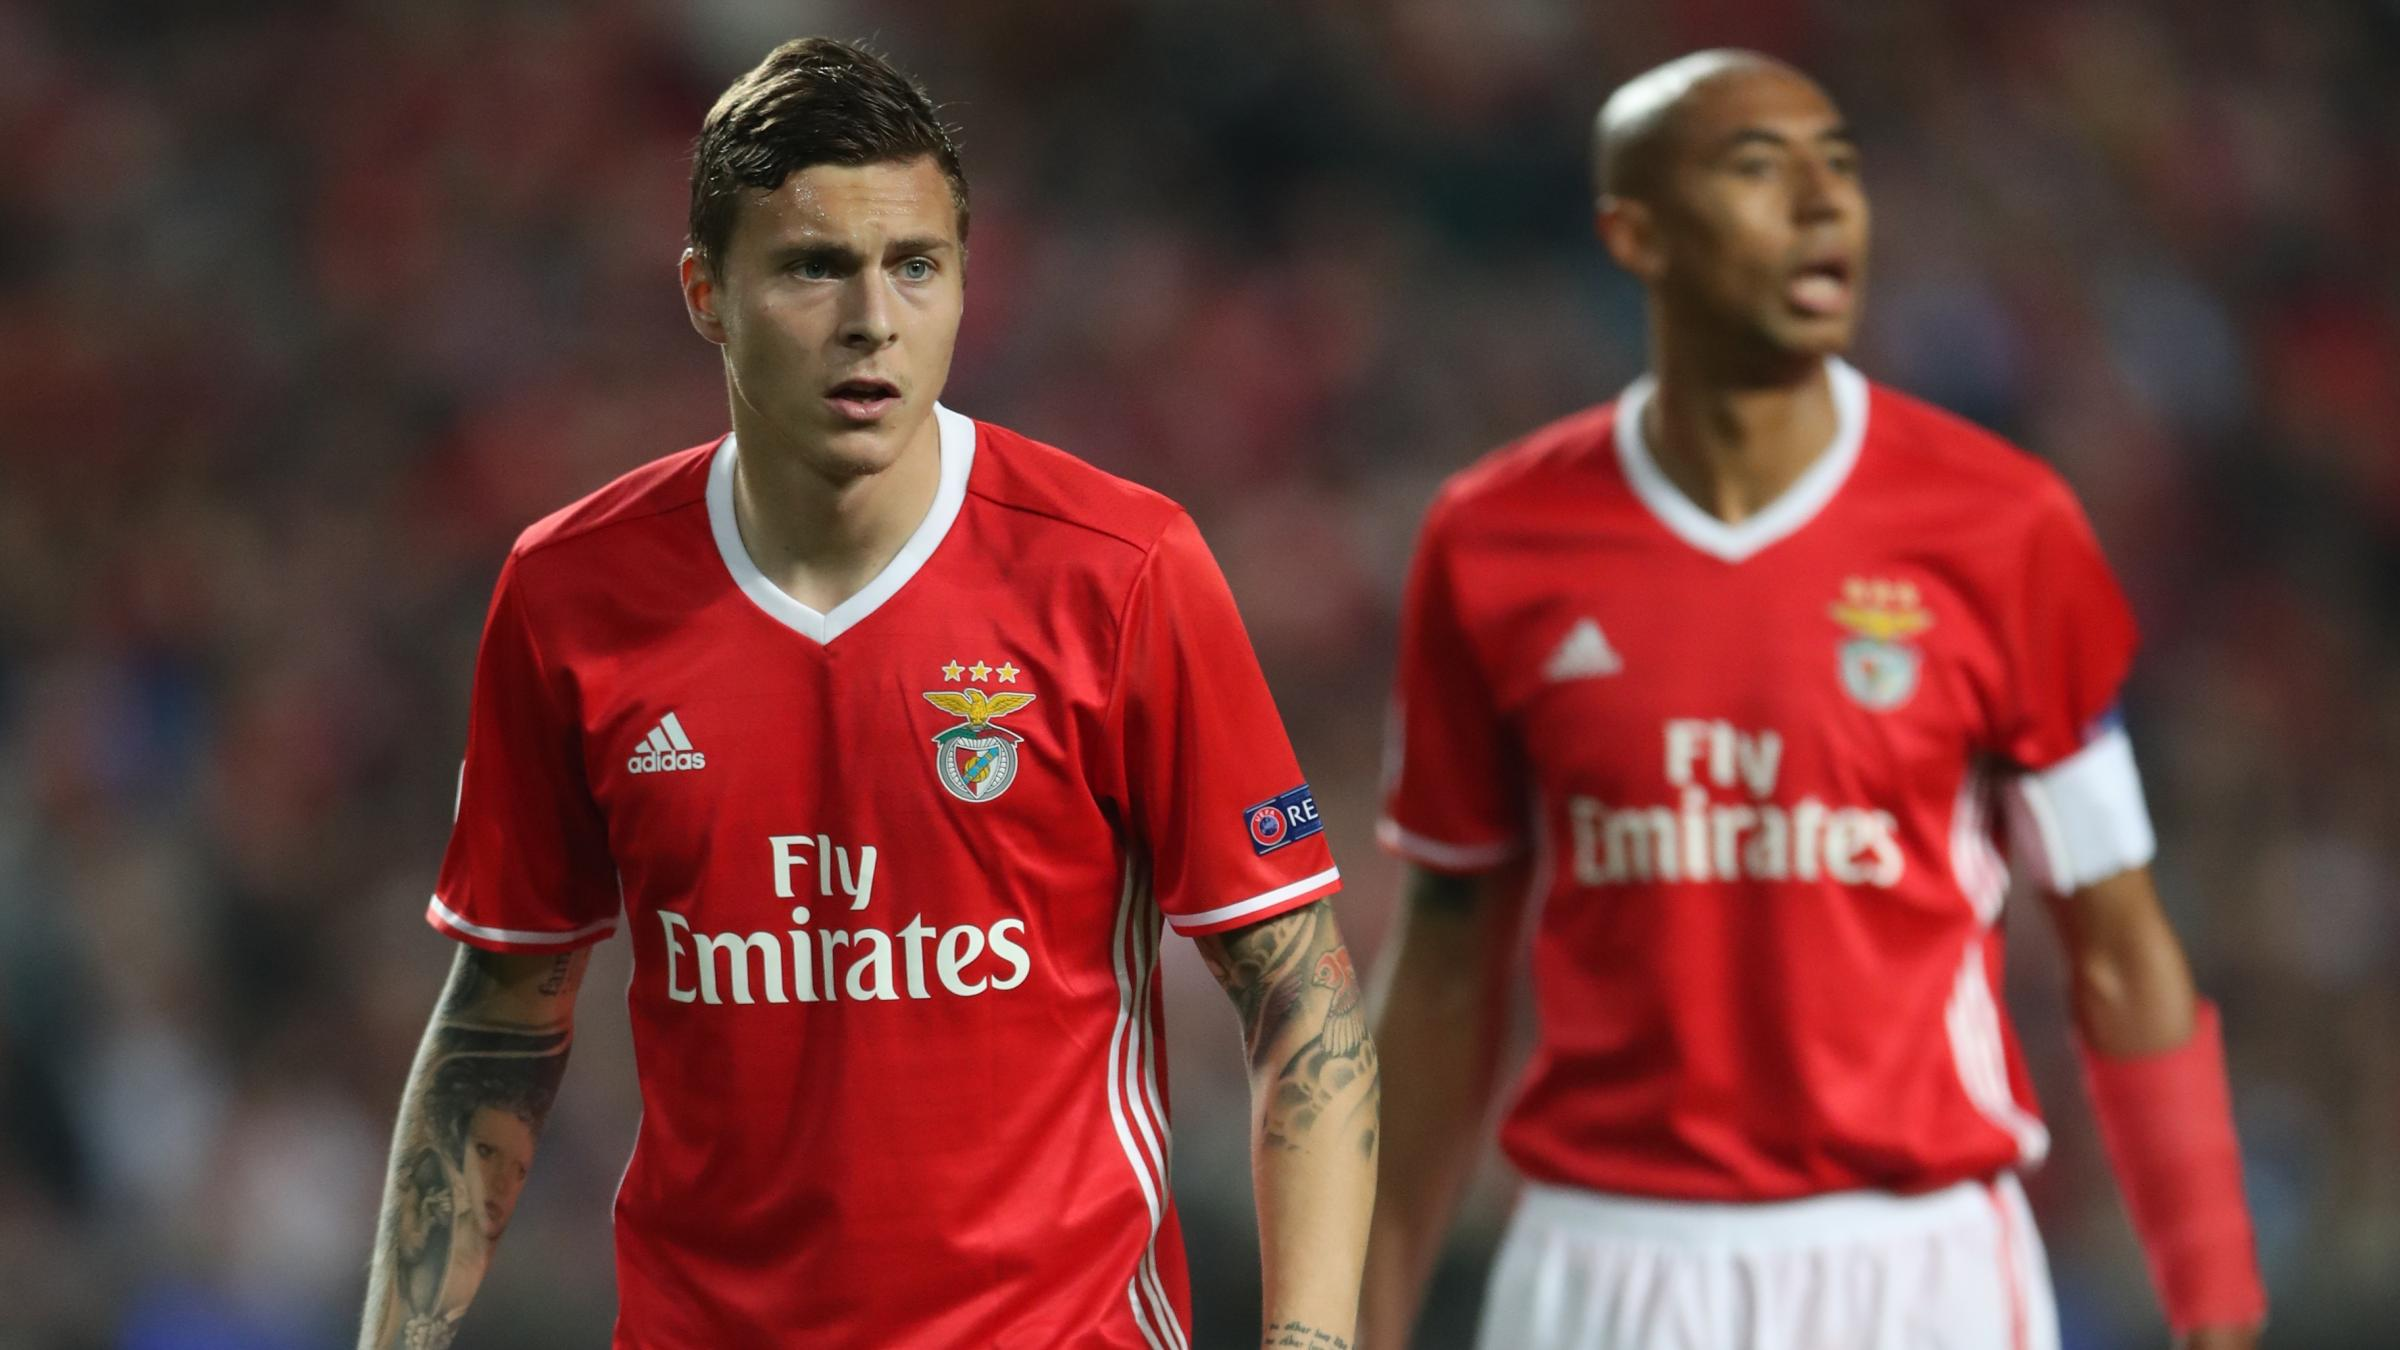 Lindelof signing leaves Manchester United futures uncertain